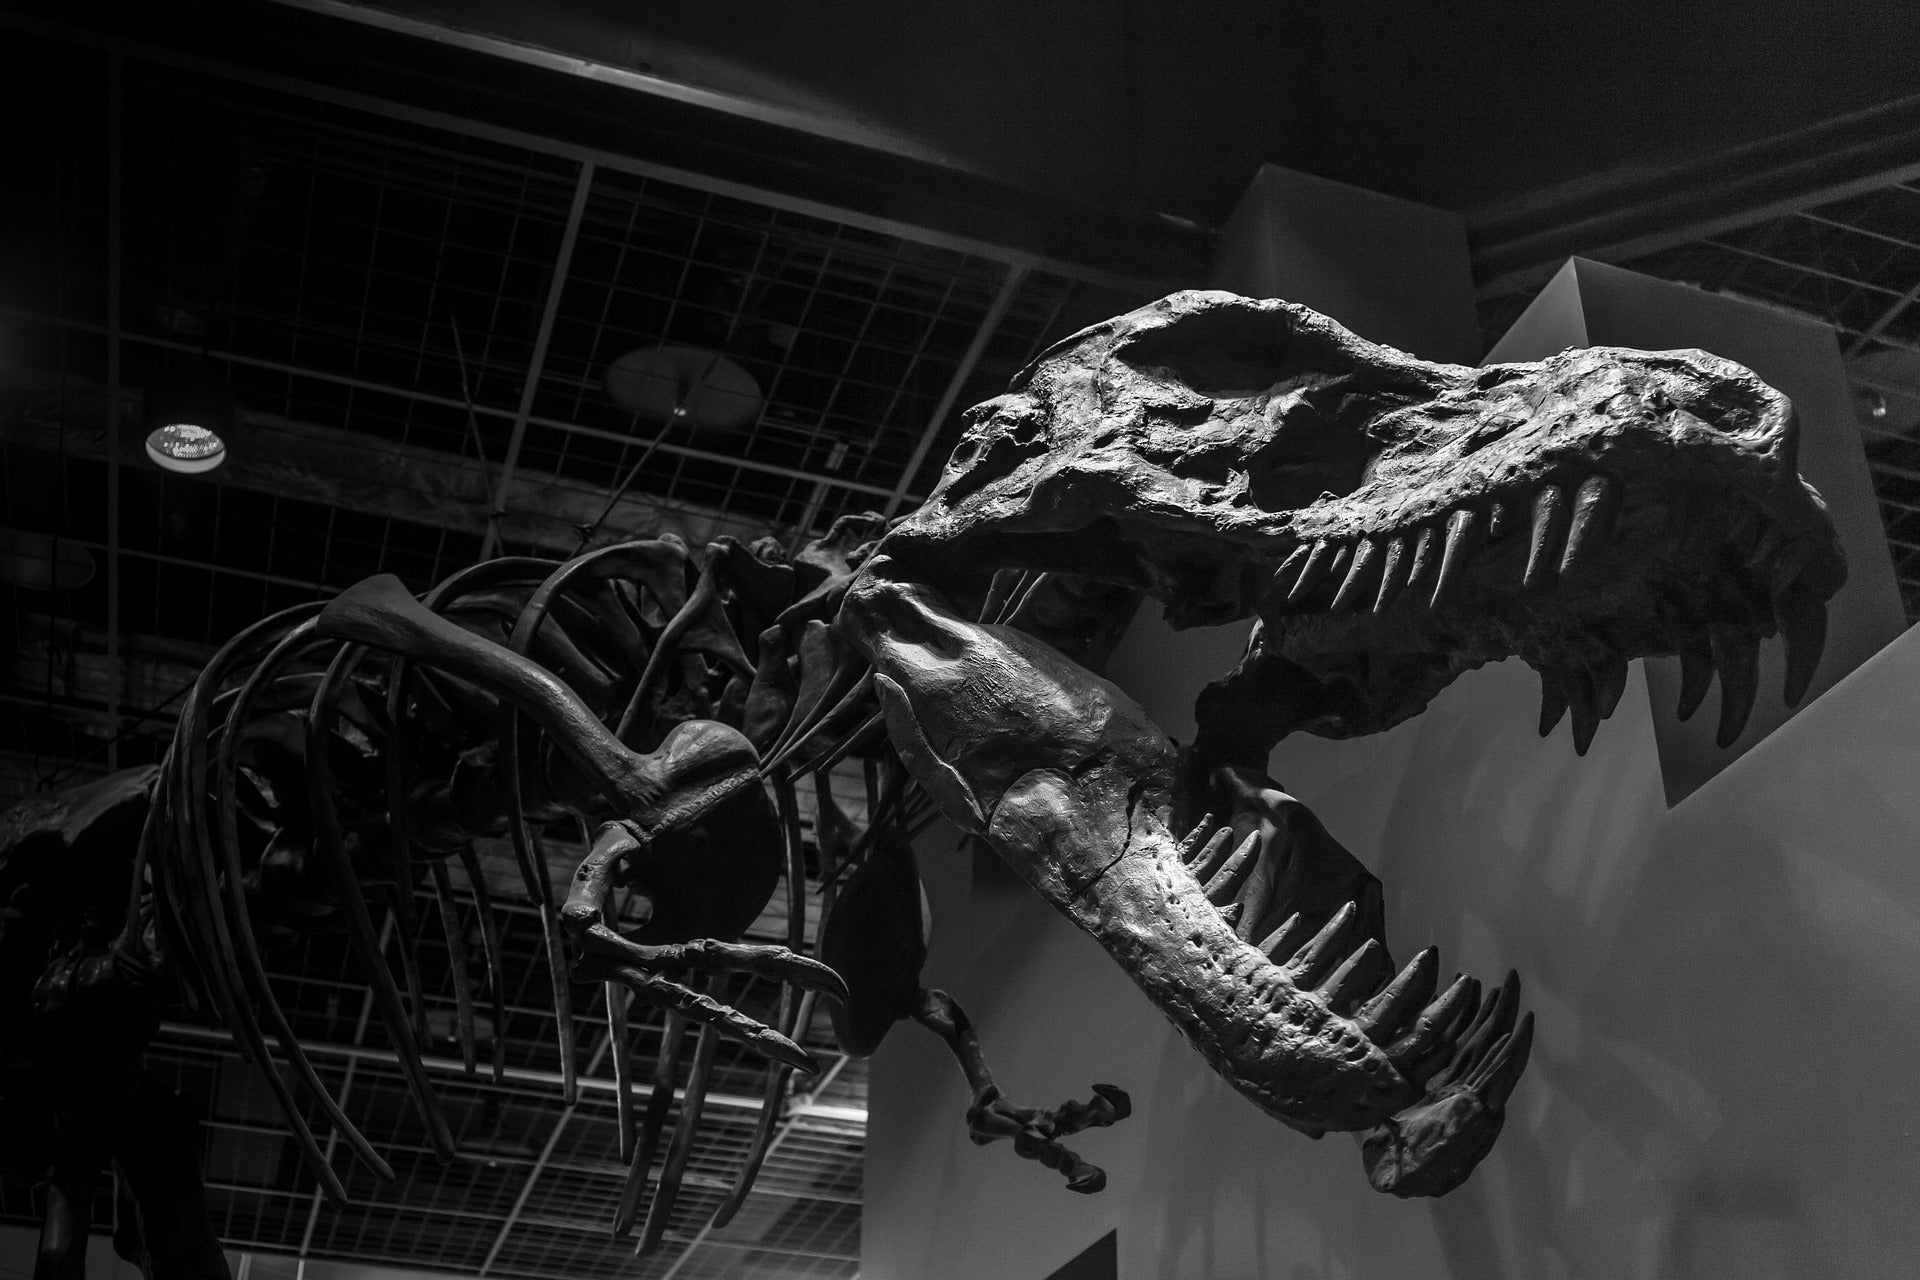 Tyrannosaurus rex had a bone-crushing bite with a force of 8,000 pounds